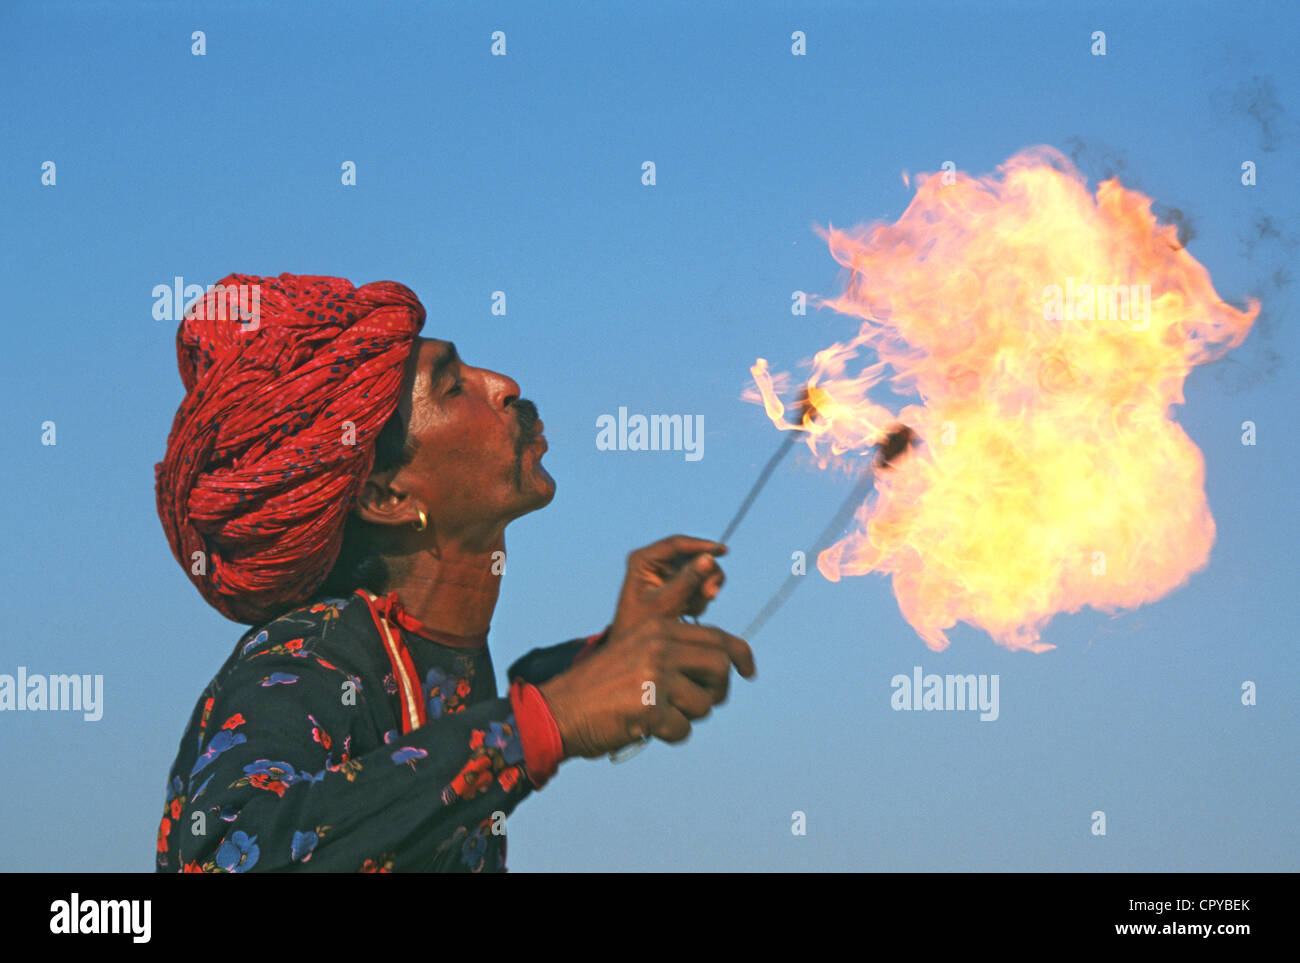 Fire eater ( India) - Stock Image